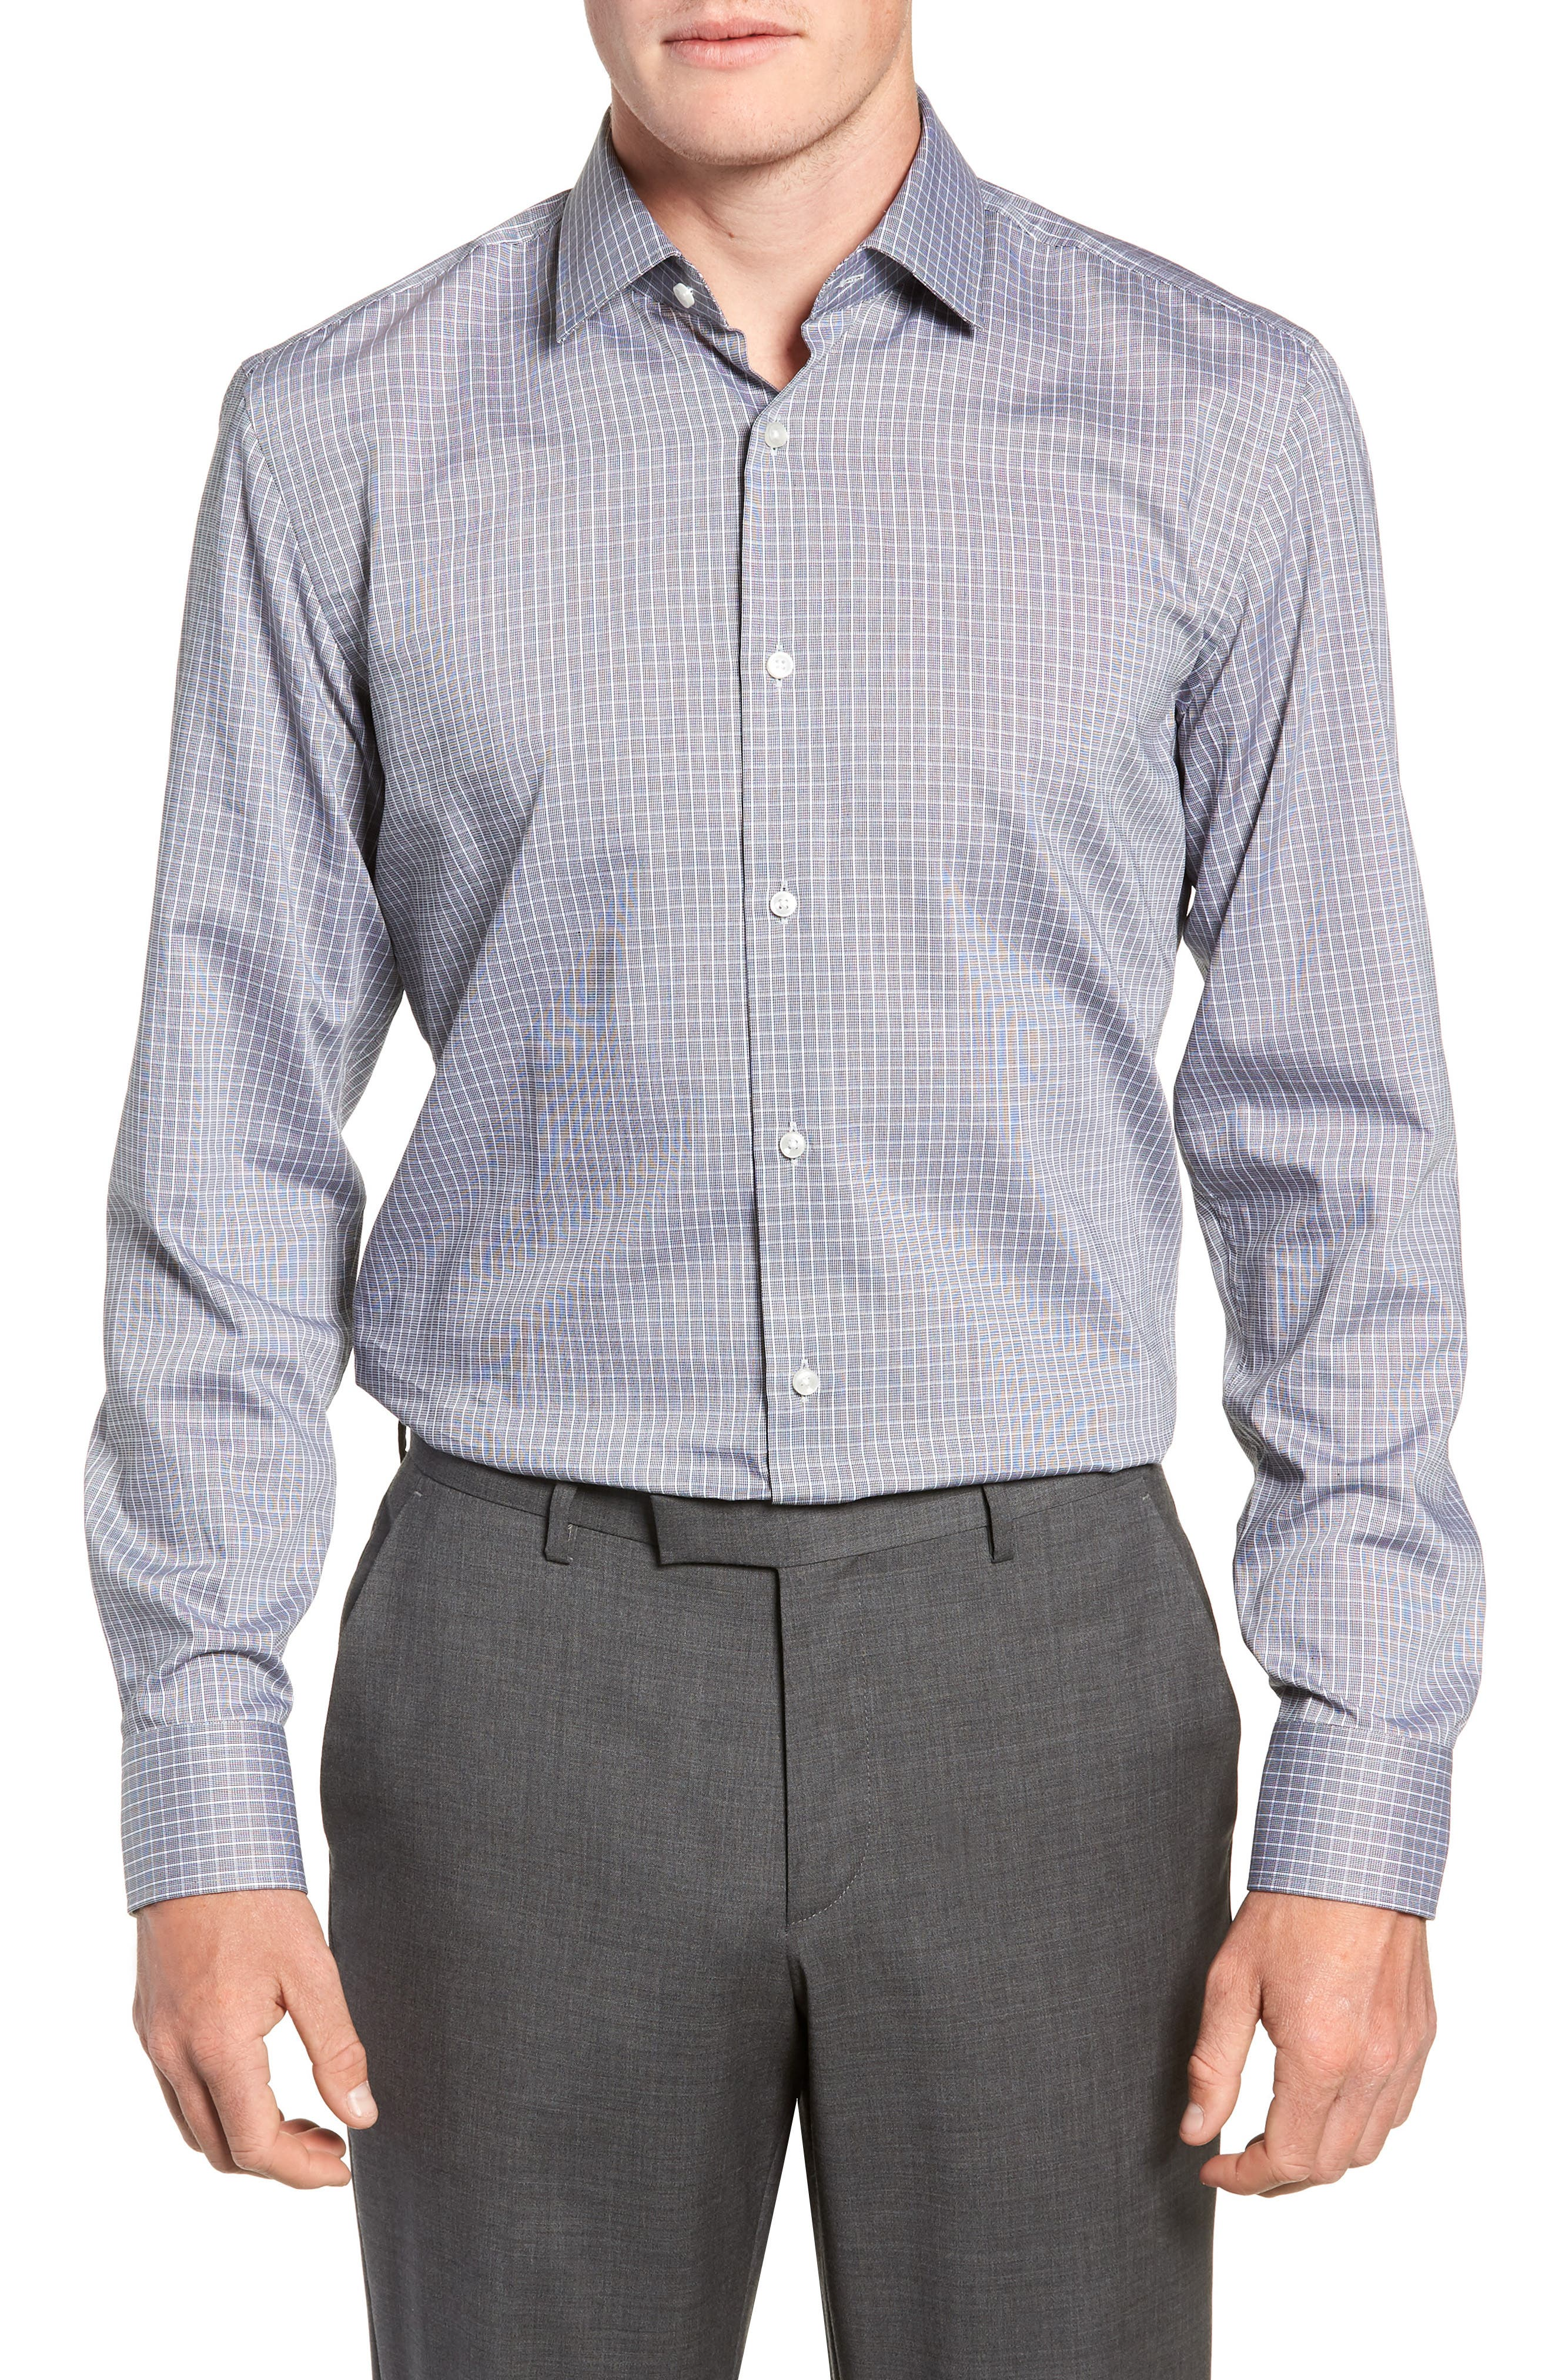 Jenno Trim Fit Check Dress Shirt,                             Main thumbnail 1, color,                             003